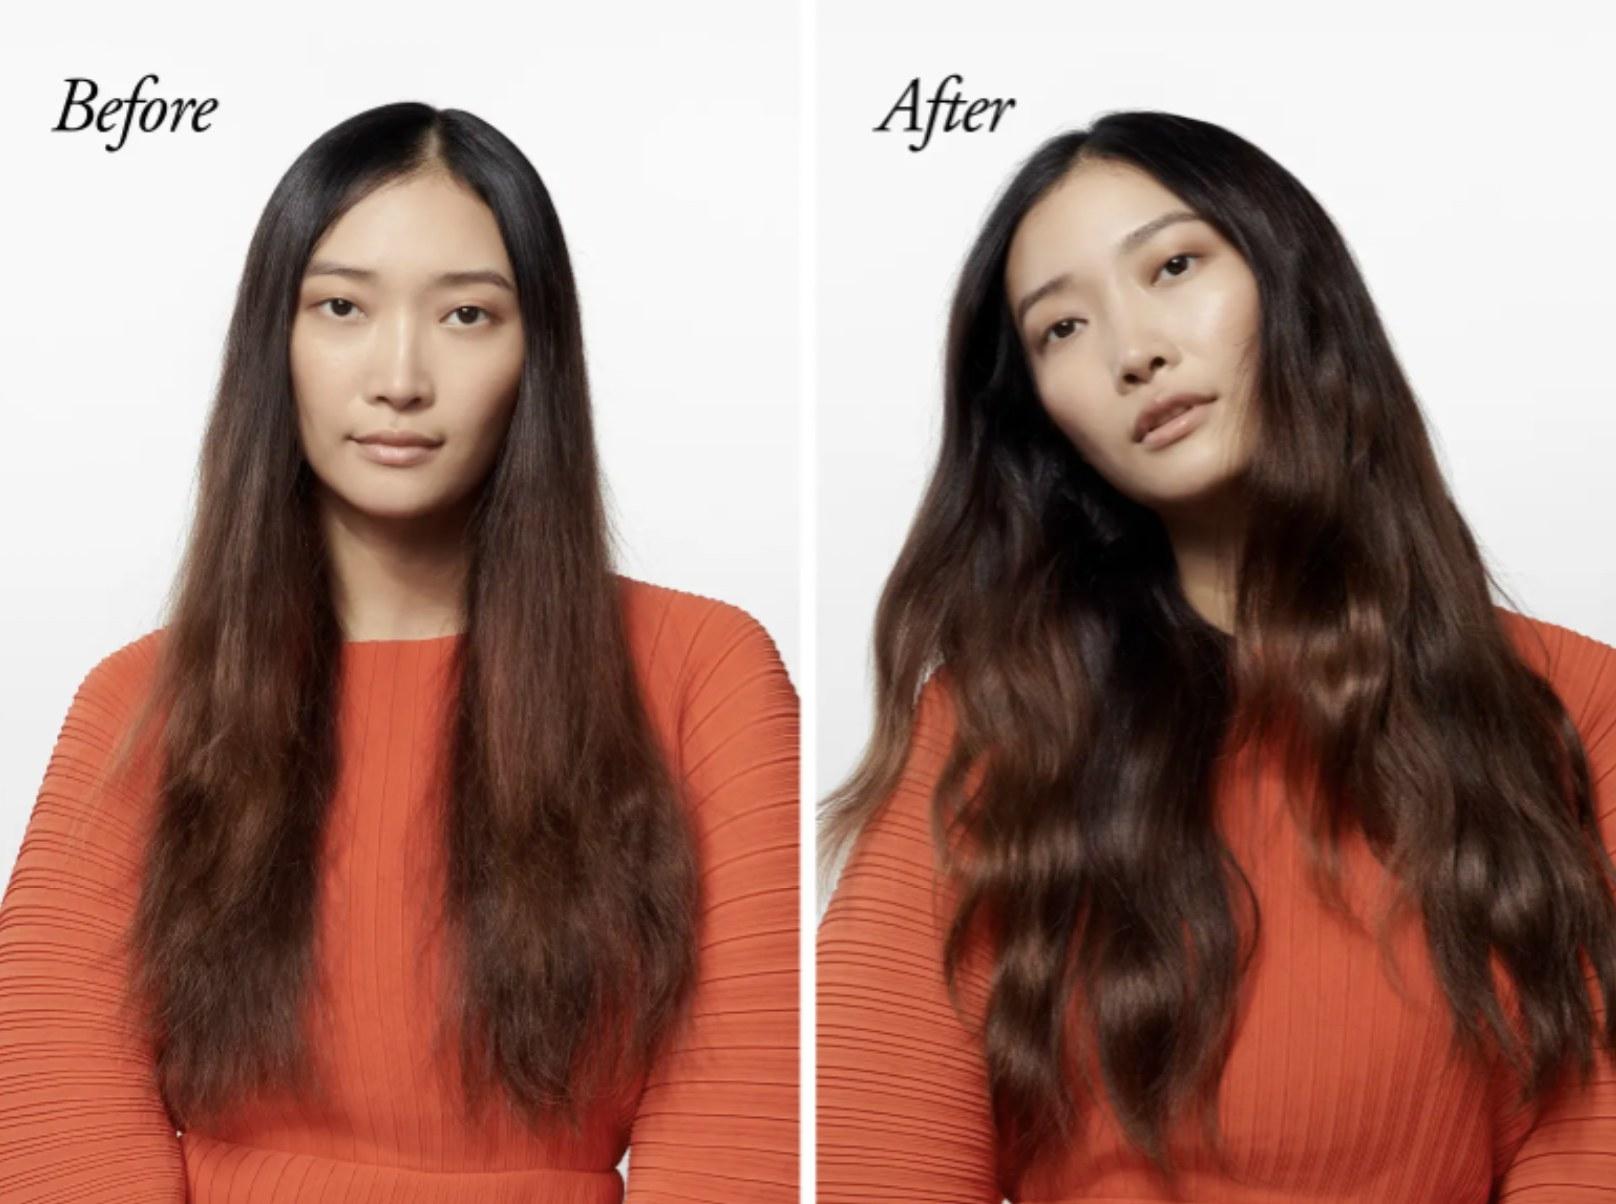 a before and after photo of a model using the texturizing spray